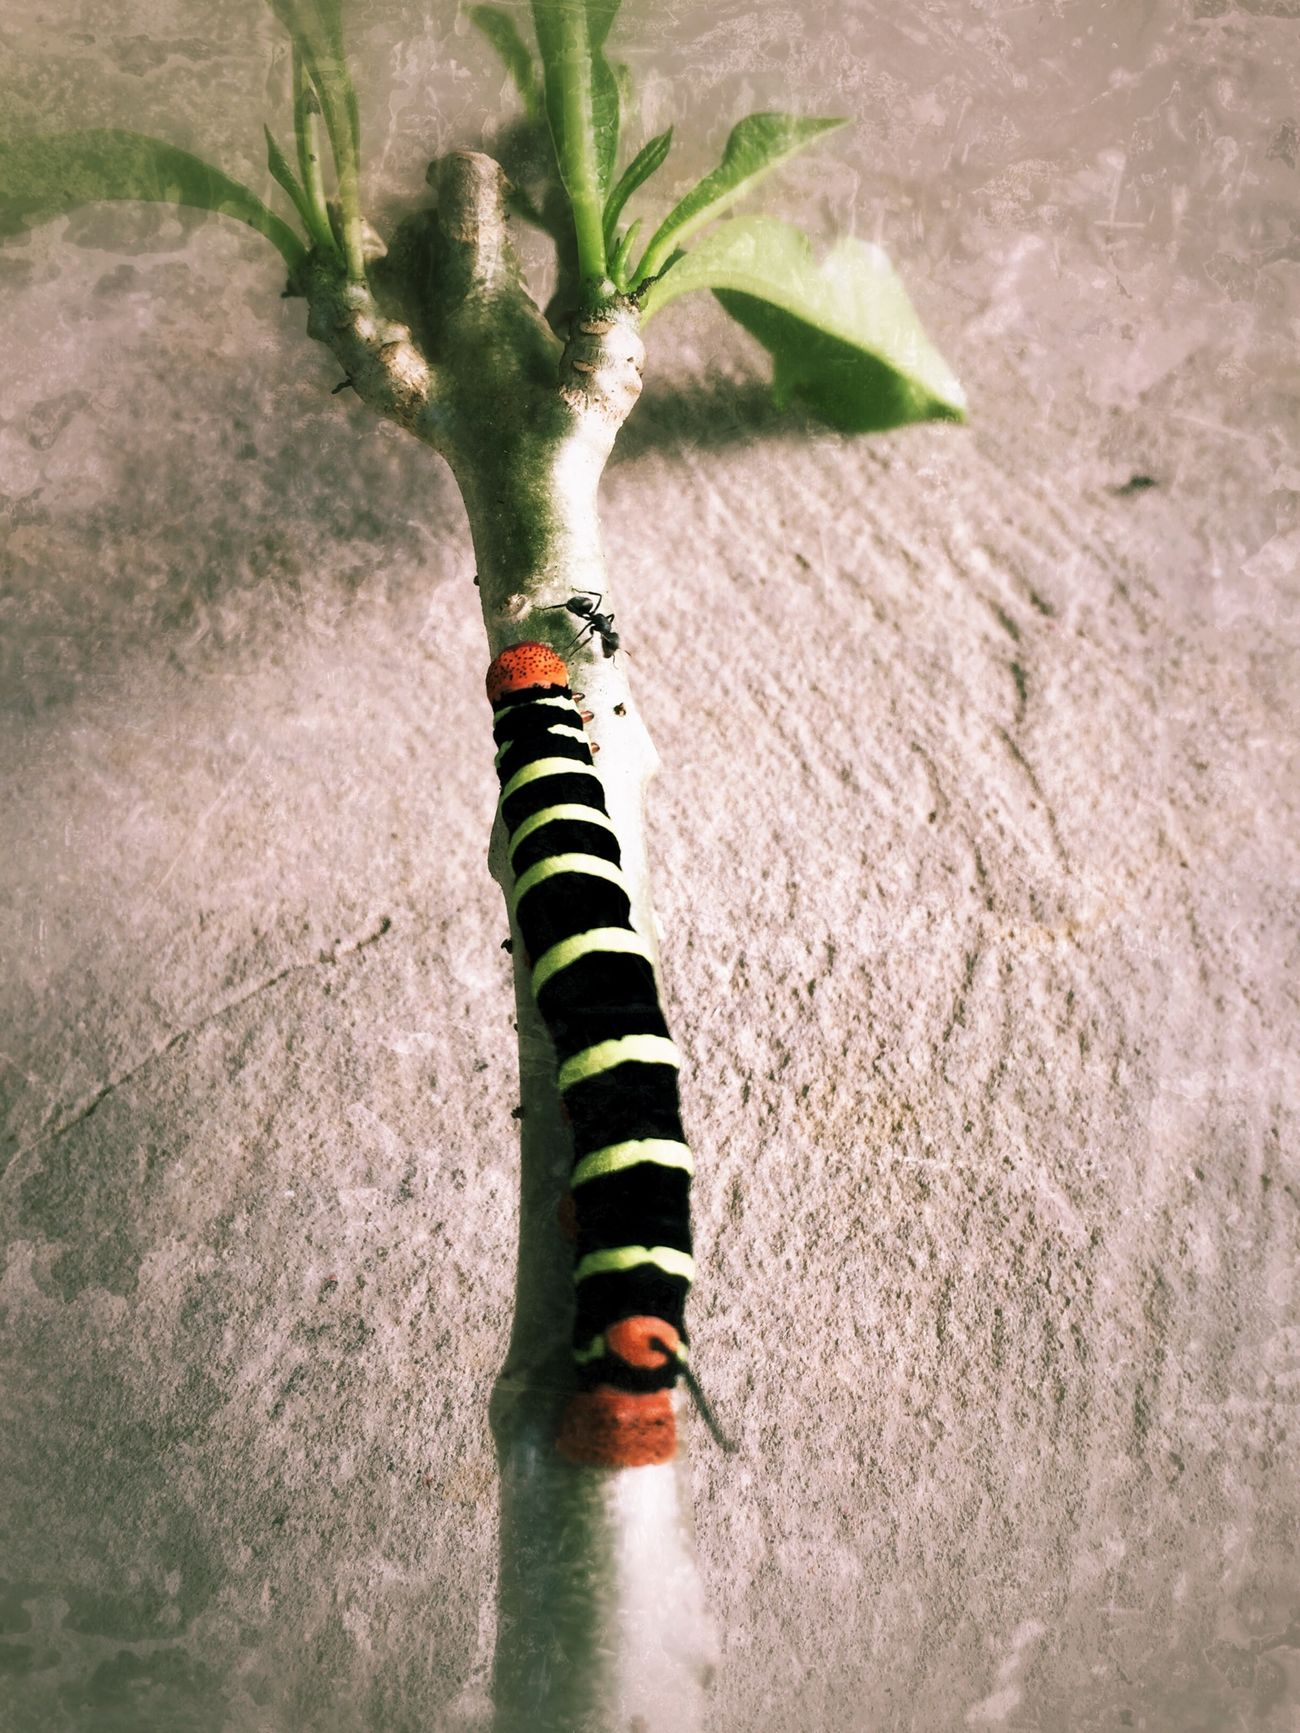 Caterpillar seen on August 3, 2014 in Trinidad. #LifeInAVillage